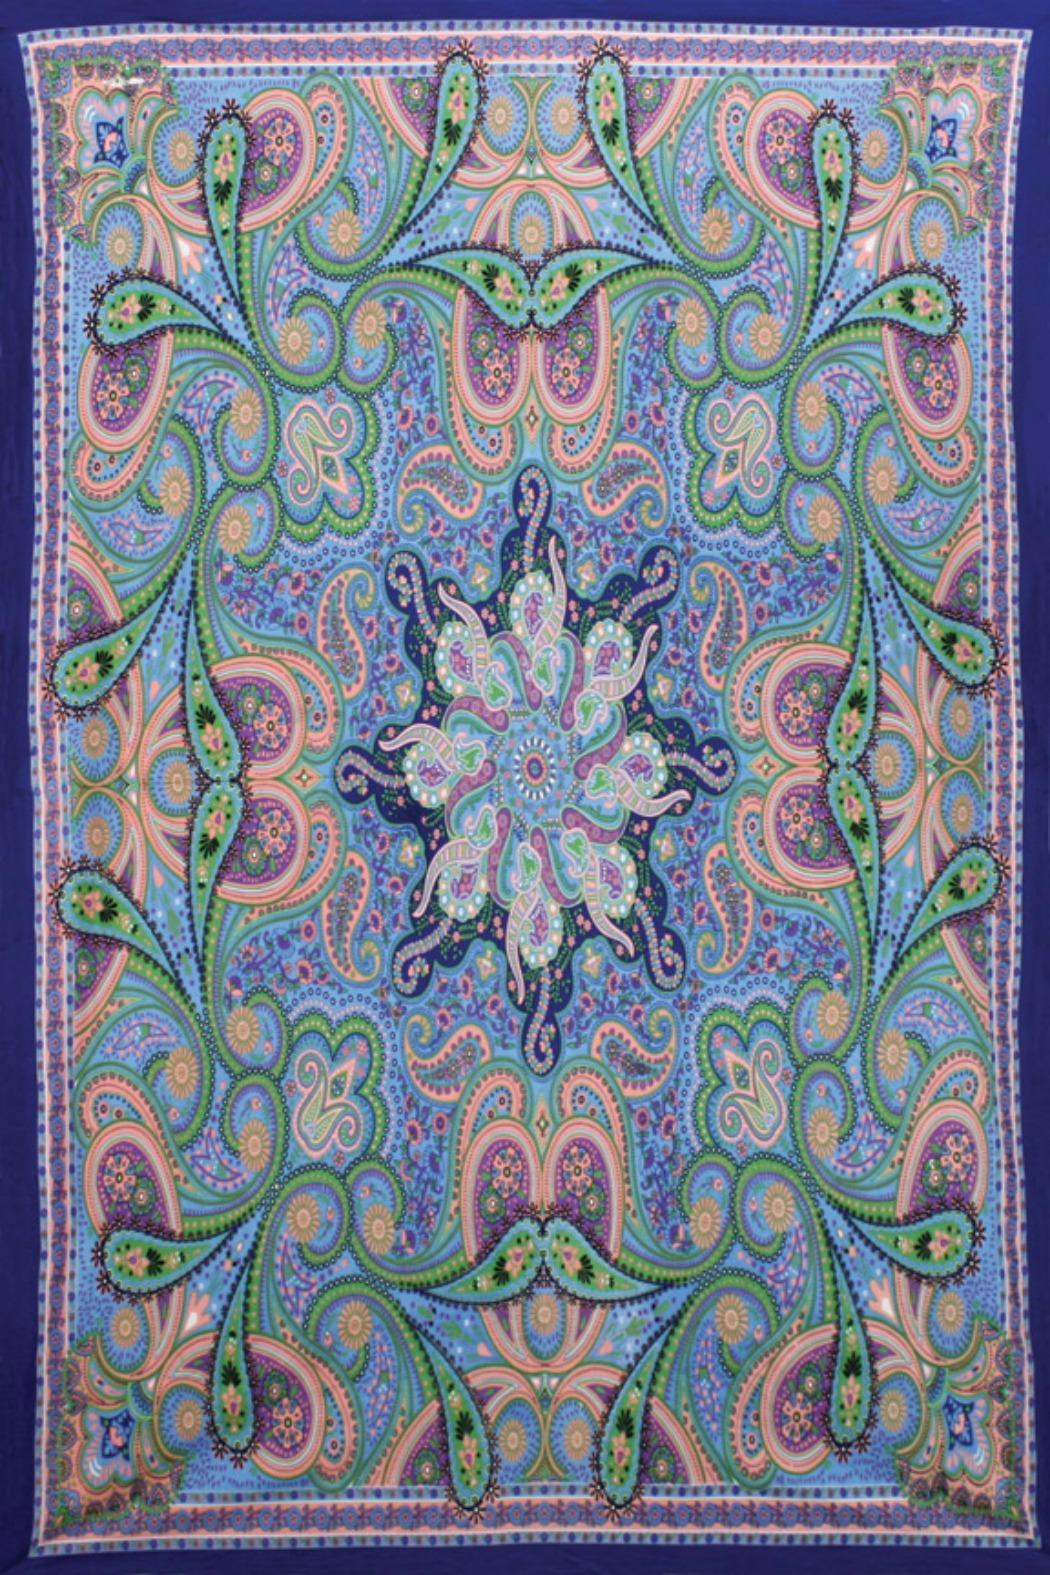 Sunshine Joy Infinity Star Tapestry - Main Image